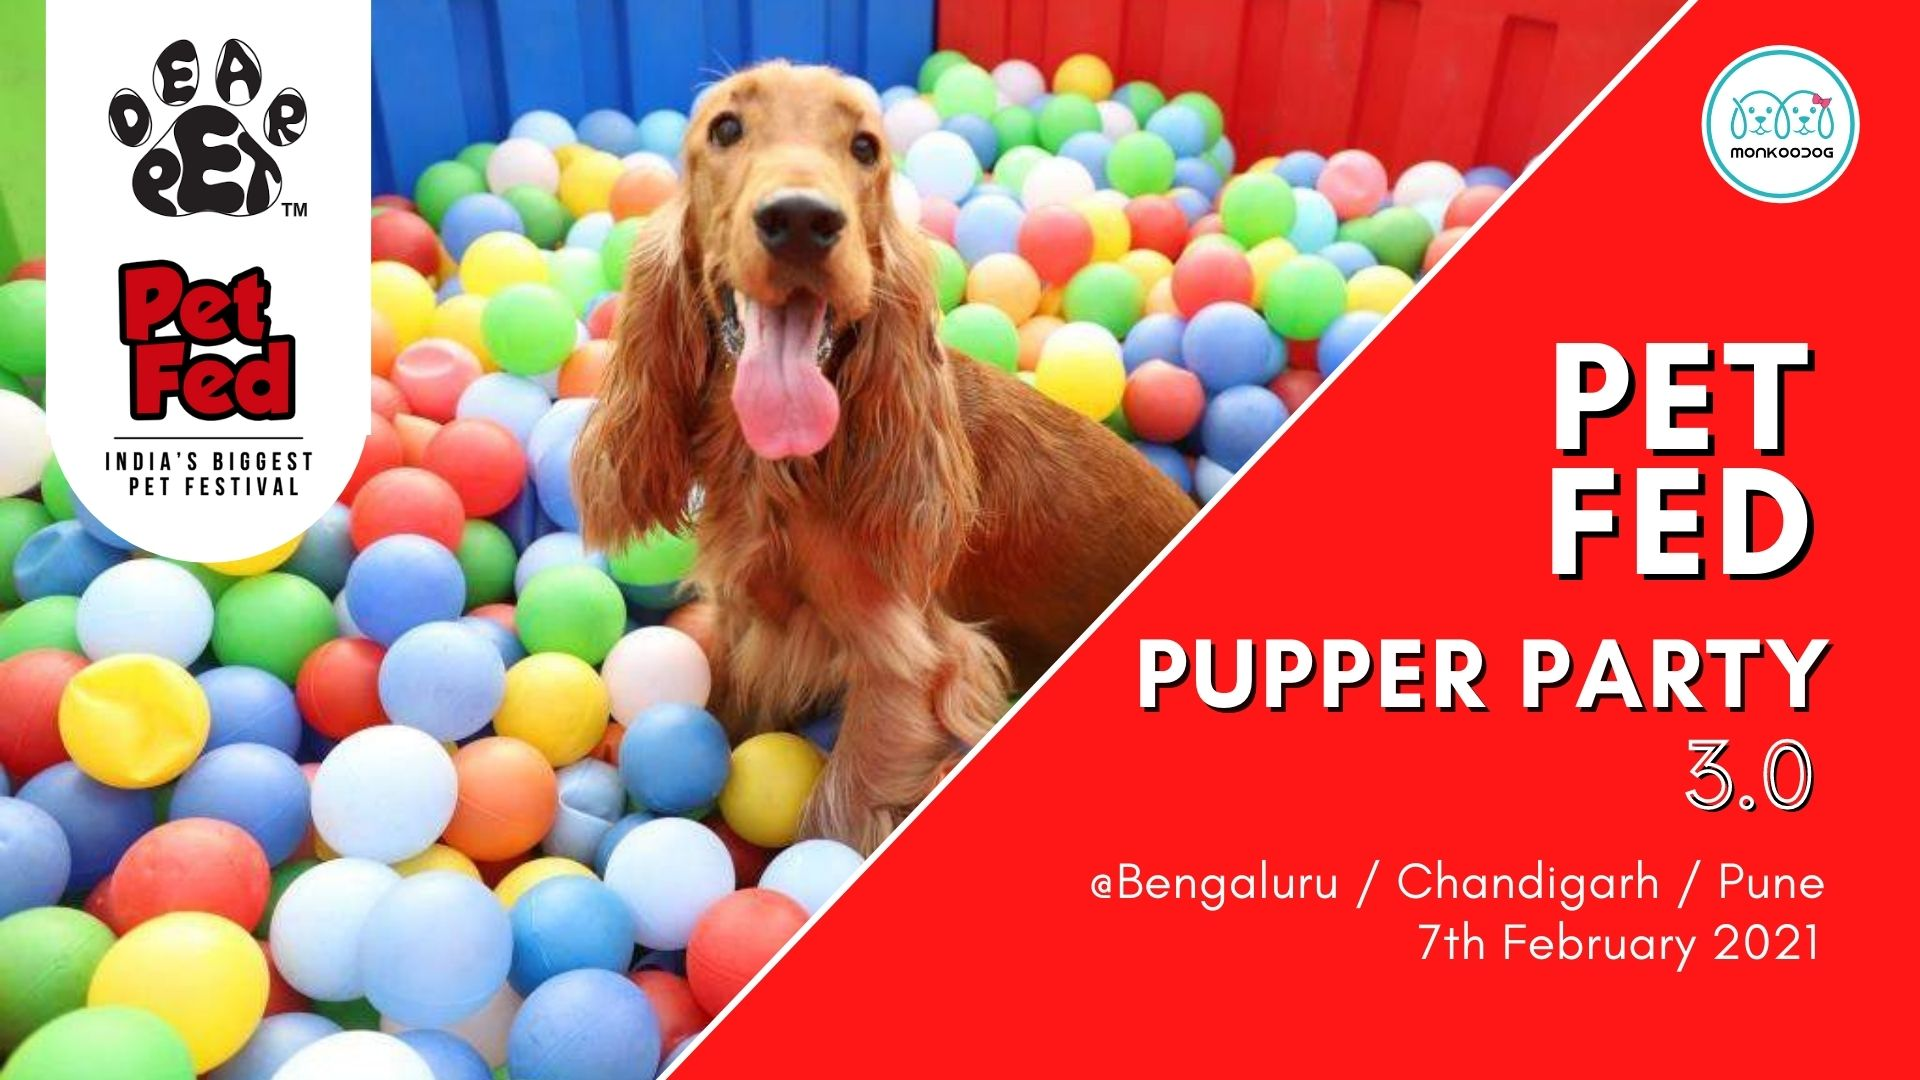 PetFed Pupper Party - Dog event